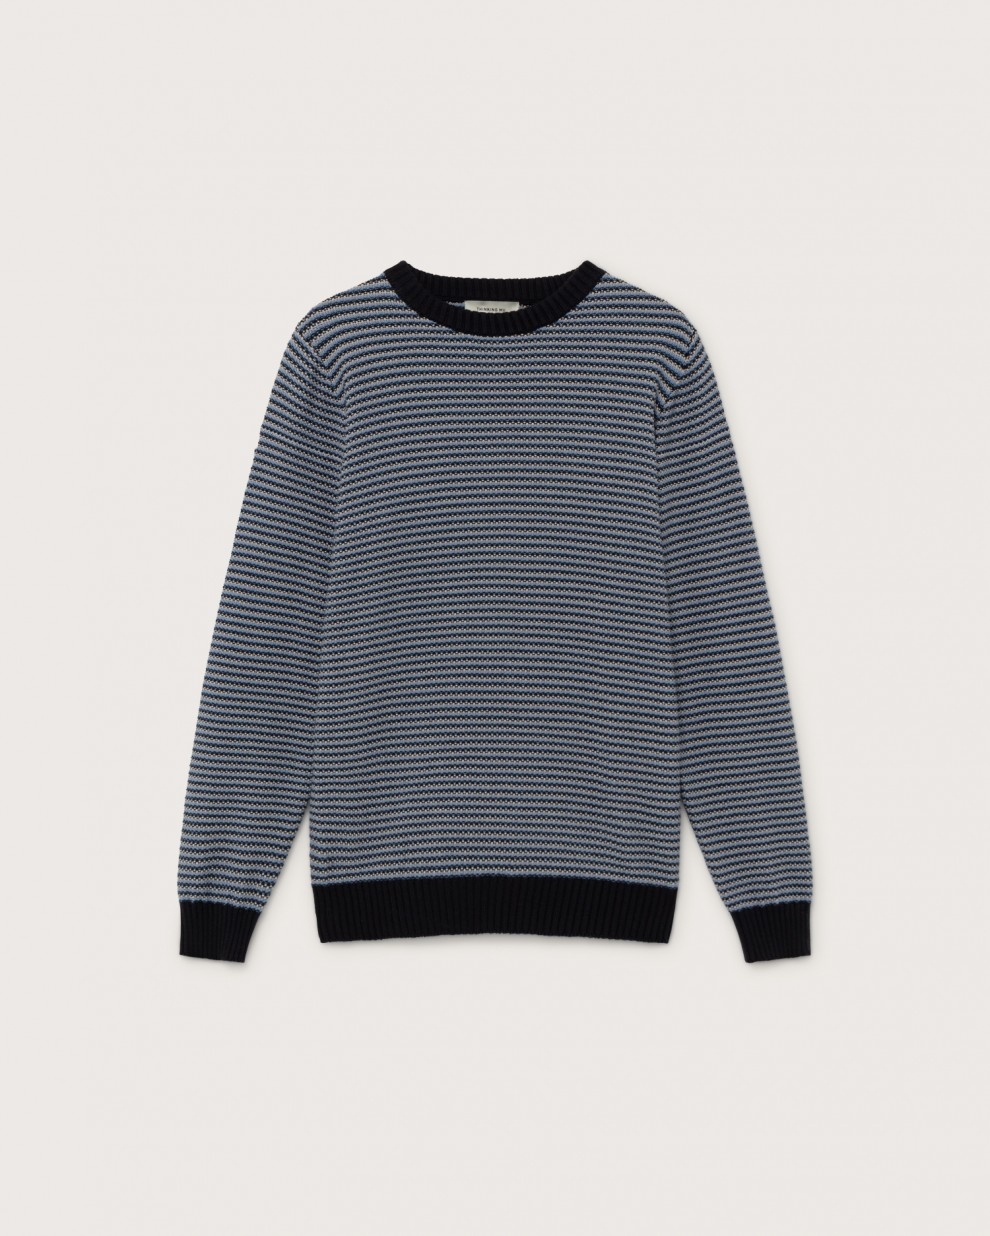 NAVY OSIRIS SWEATER